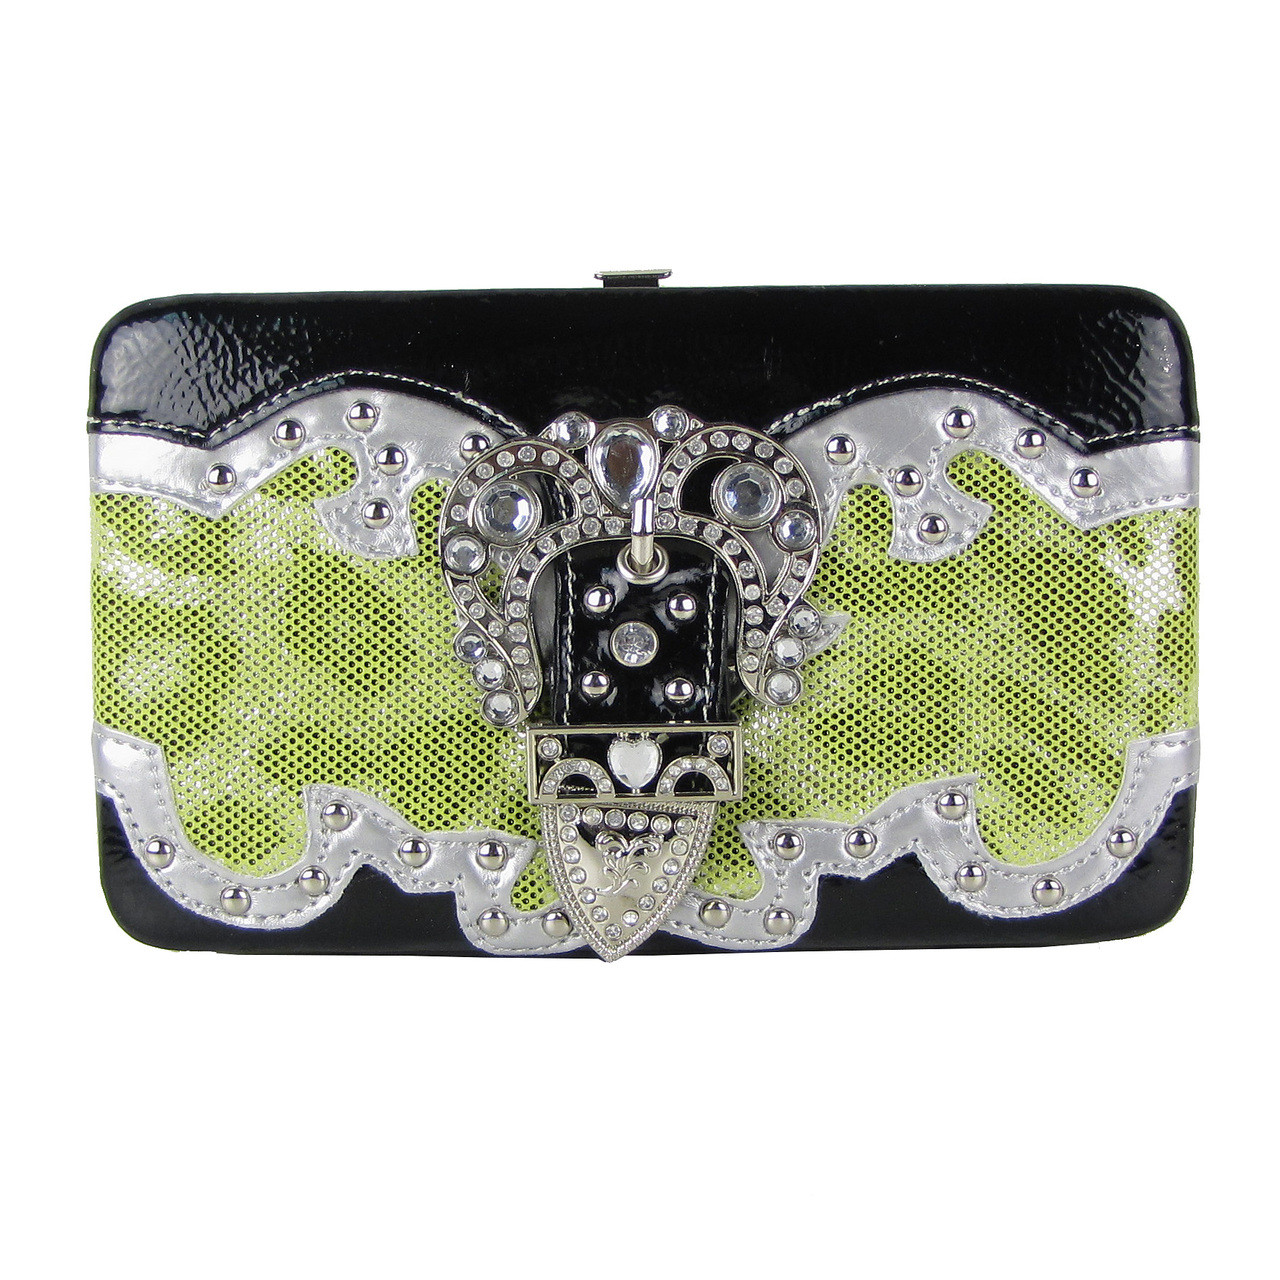 GREEN LEAPORD METALLIC STUDDED RHINESTONE BUCKLE LOOK FLAT THICK WALLET FW2-12103GRN